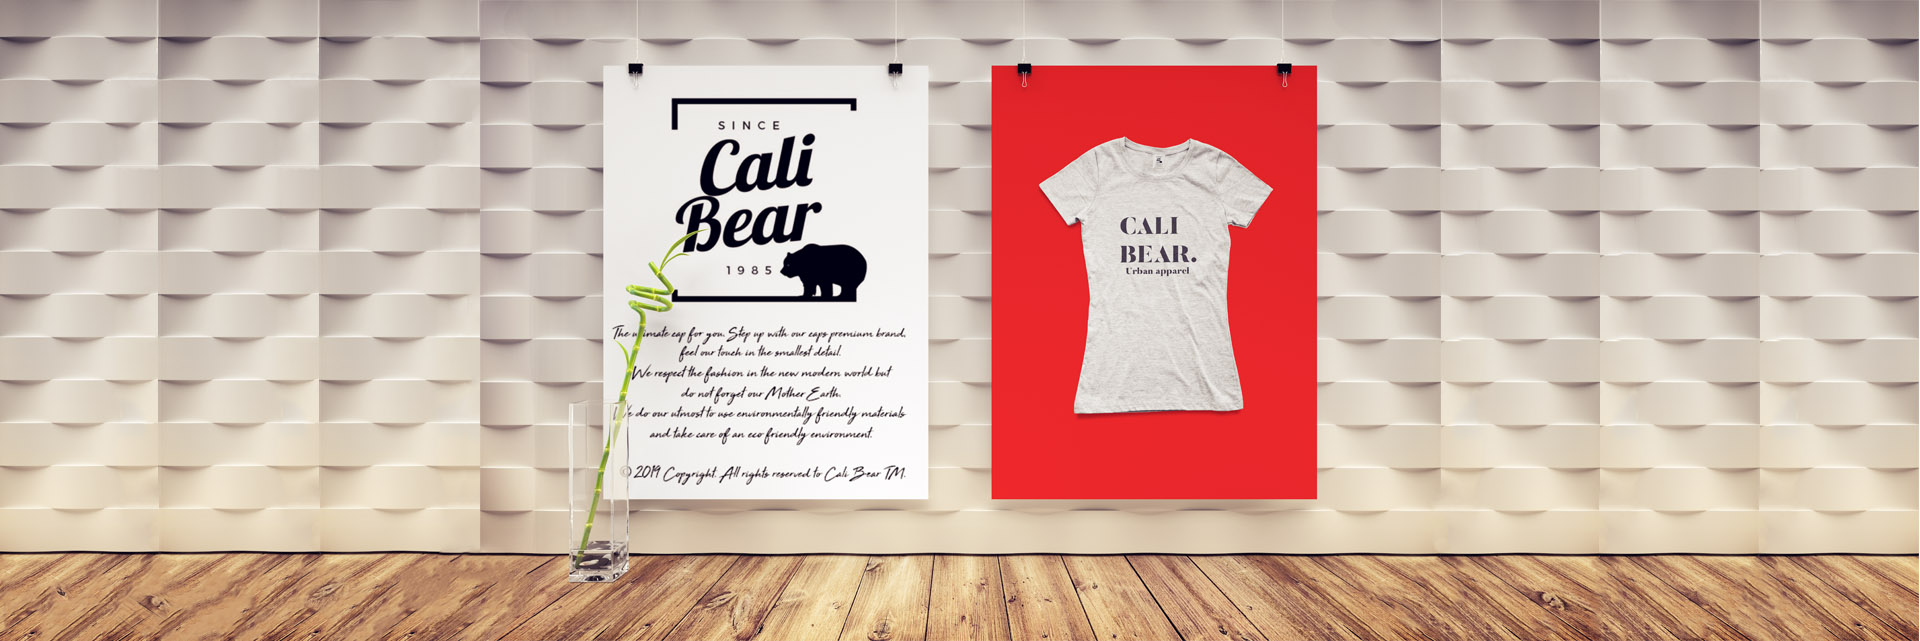 Calibear Urban Apparel